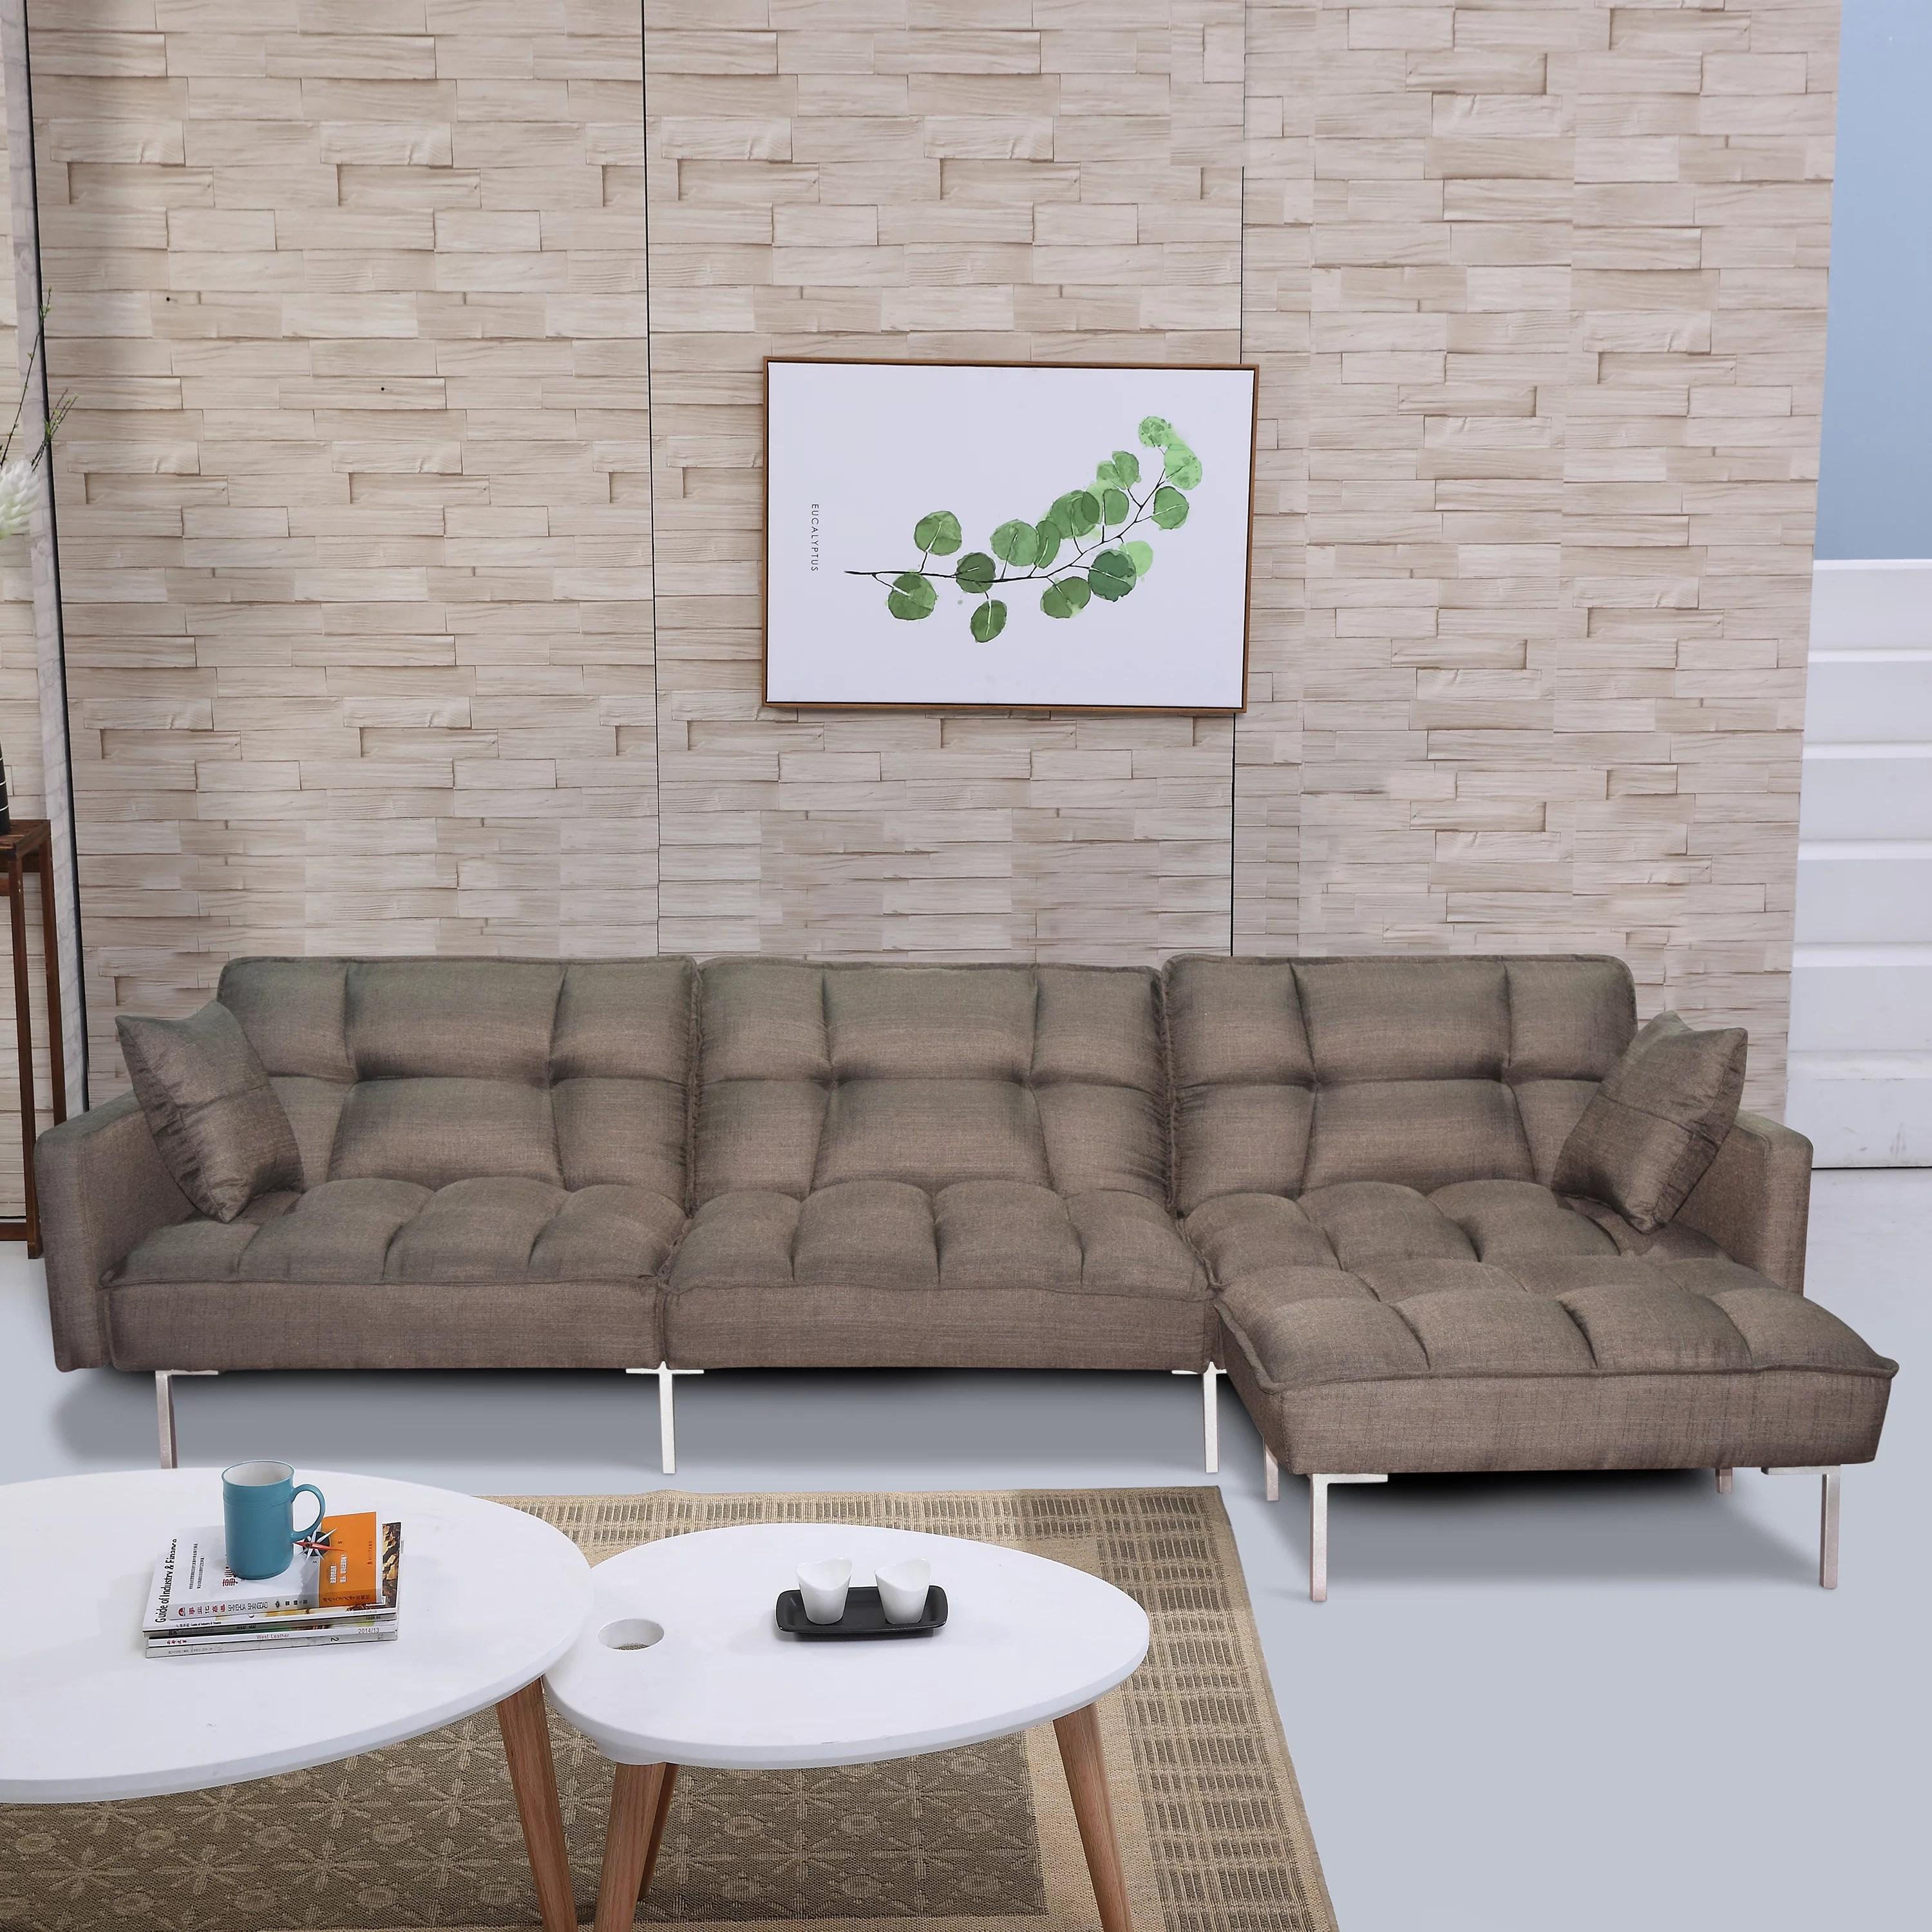 Simple Gray Sofa Bed 109 X 53 X 30 3 Modern Sectional Motion Sofa With Reversible Ottoman Segmart Fabric Sectional Sofas With 2 Pillows And Metal Legs For Living Room 300lbs S8245